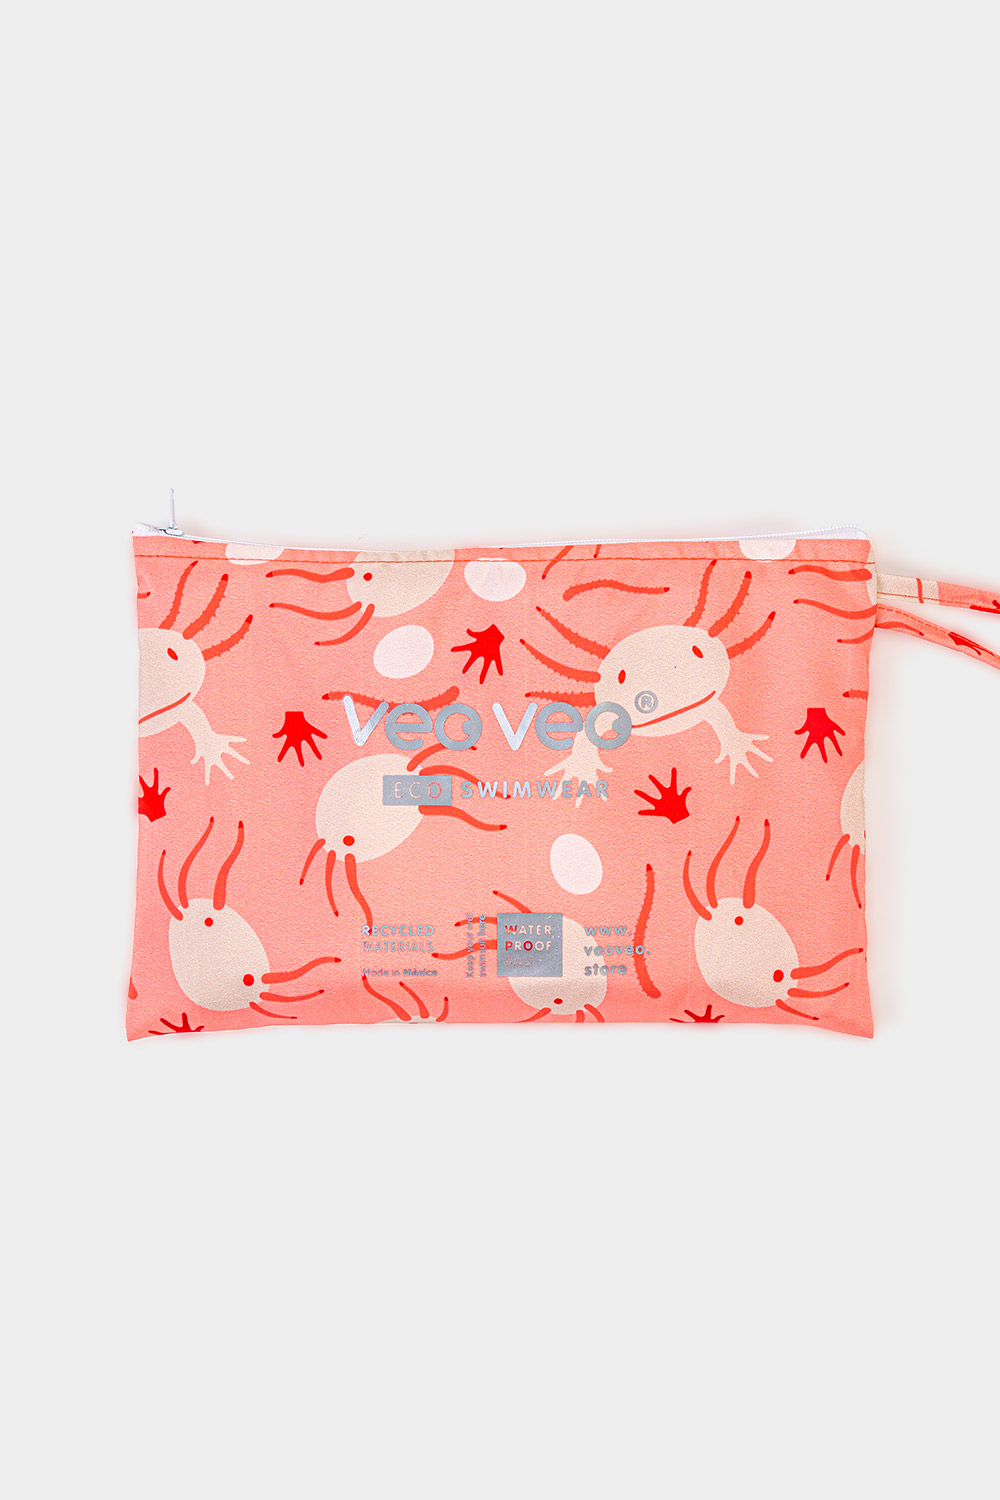 waterproof bag axolotl